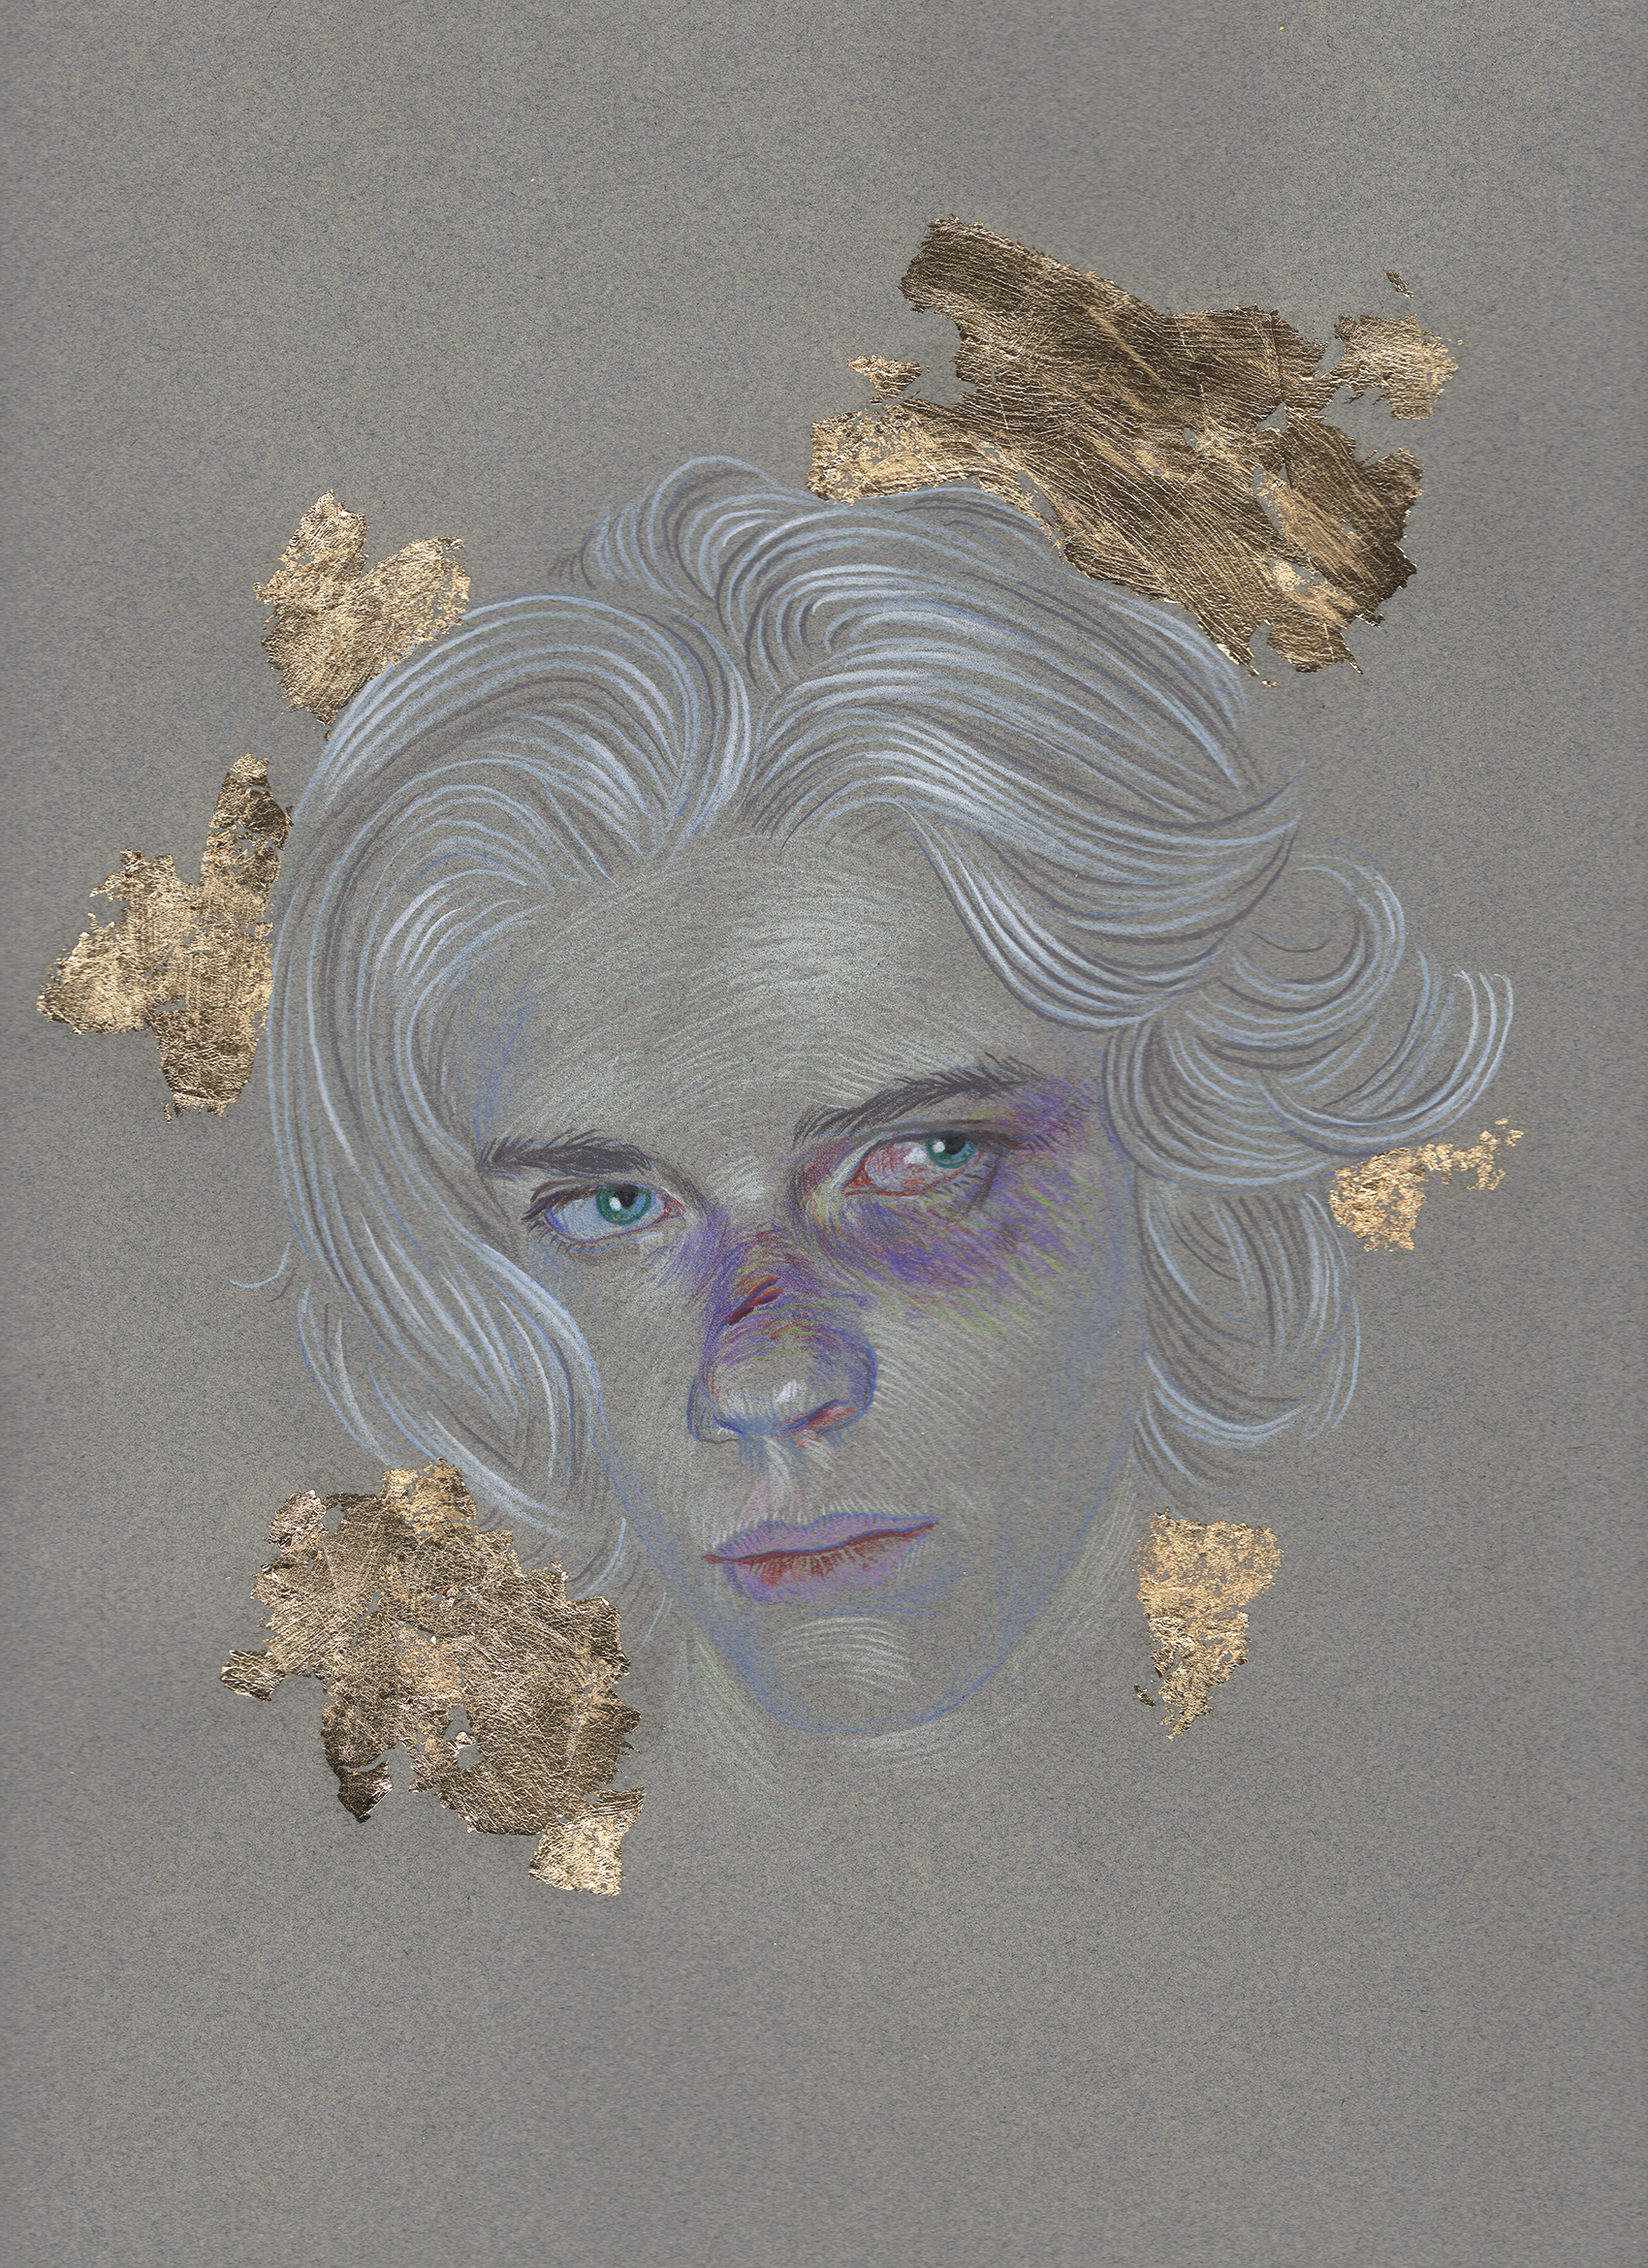 Untitled. Color pencil, gold leaf on paper. 12 x 9 inches.